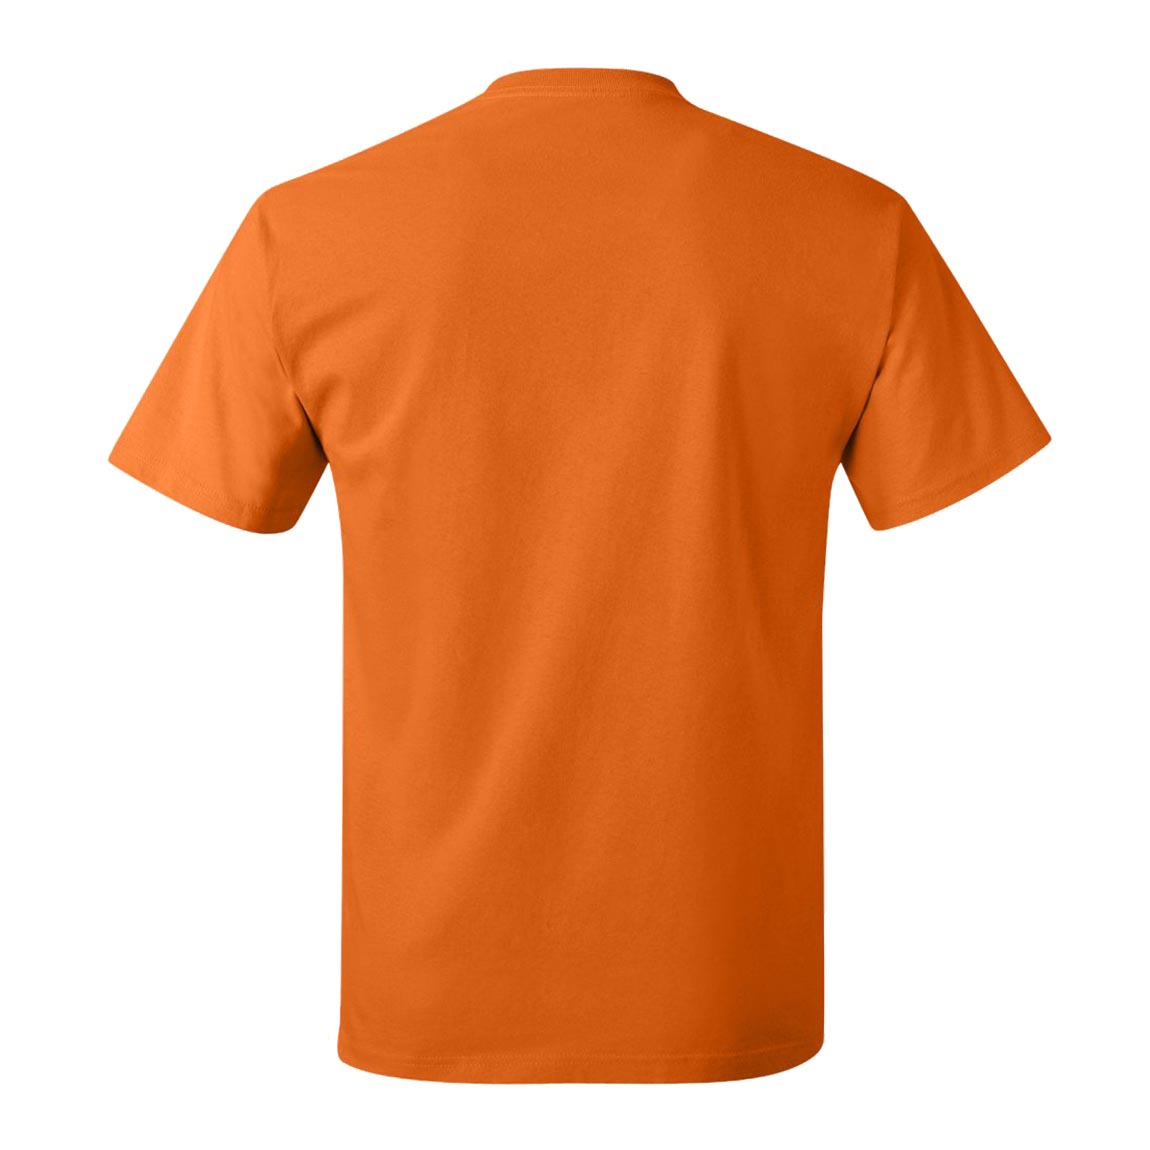 AthleticOrange